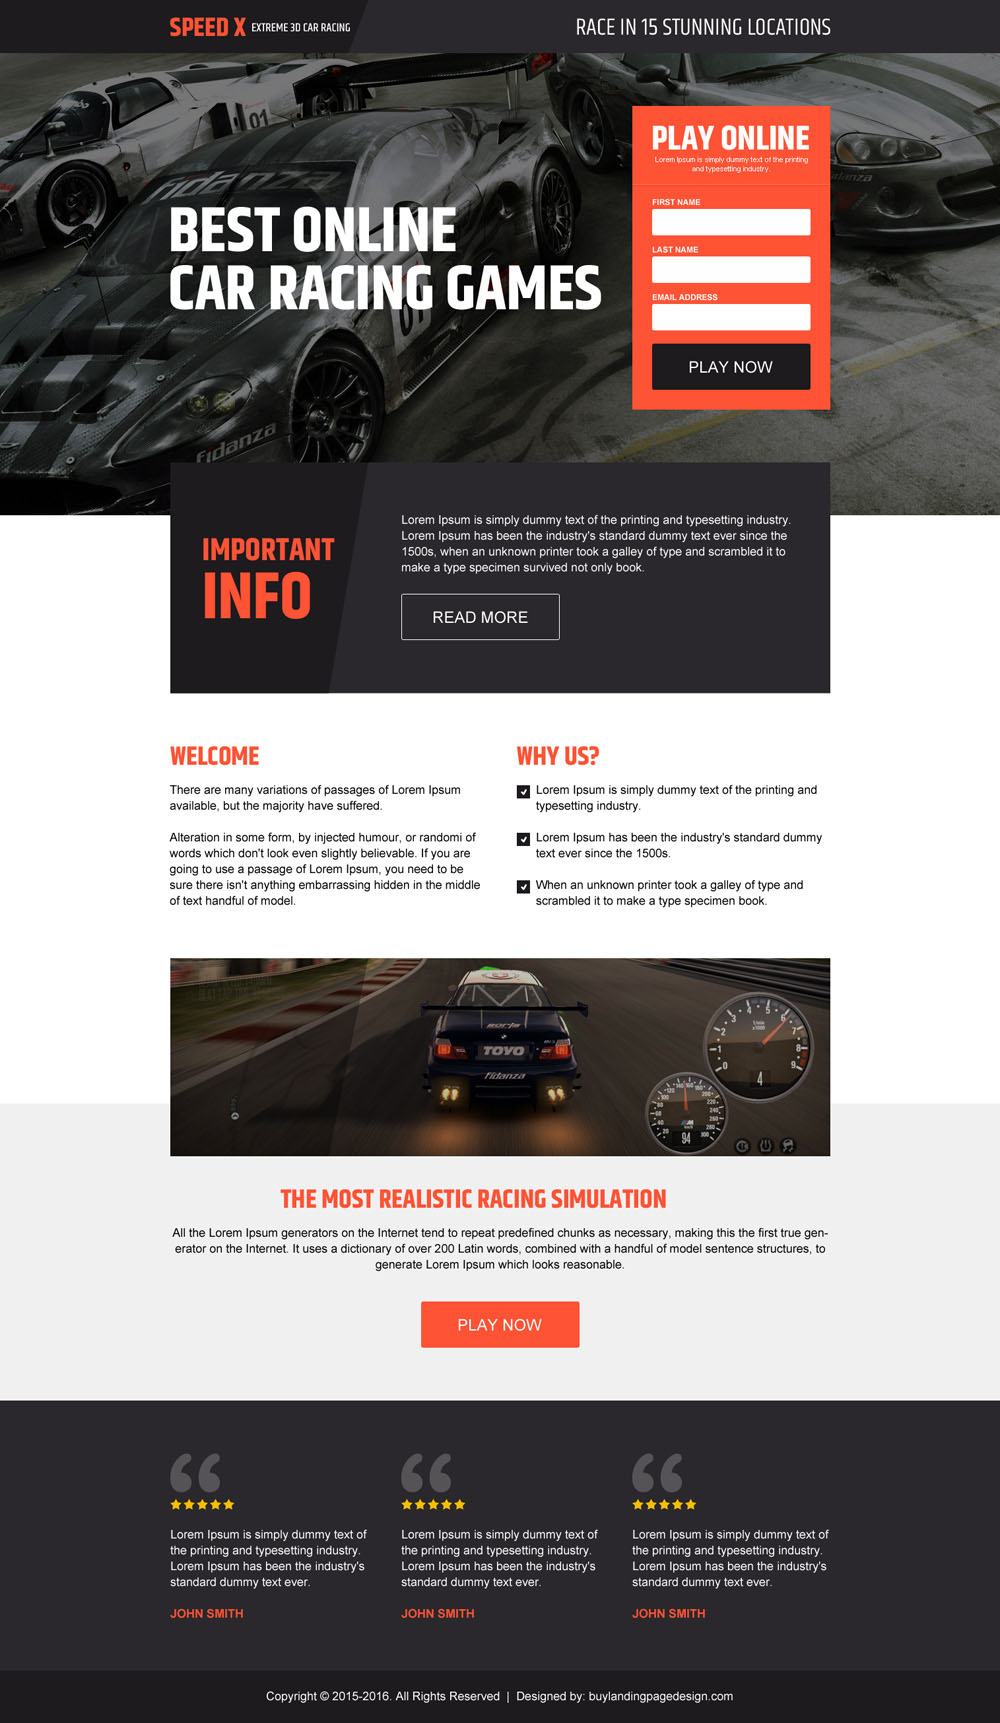 responsive games landing page design to promote your games